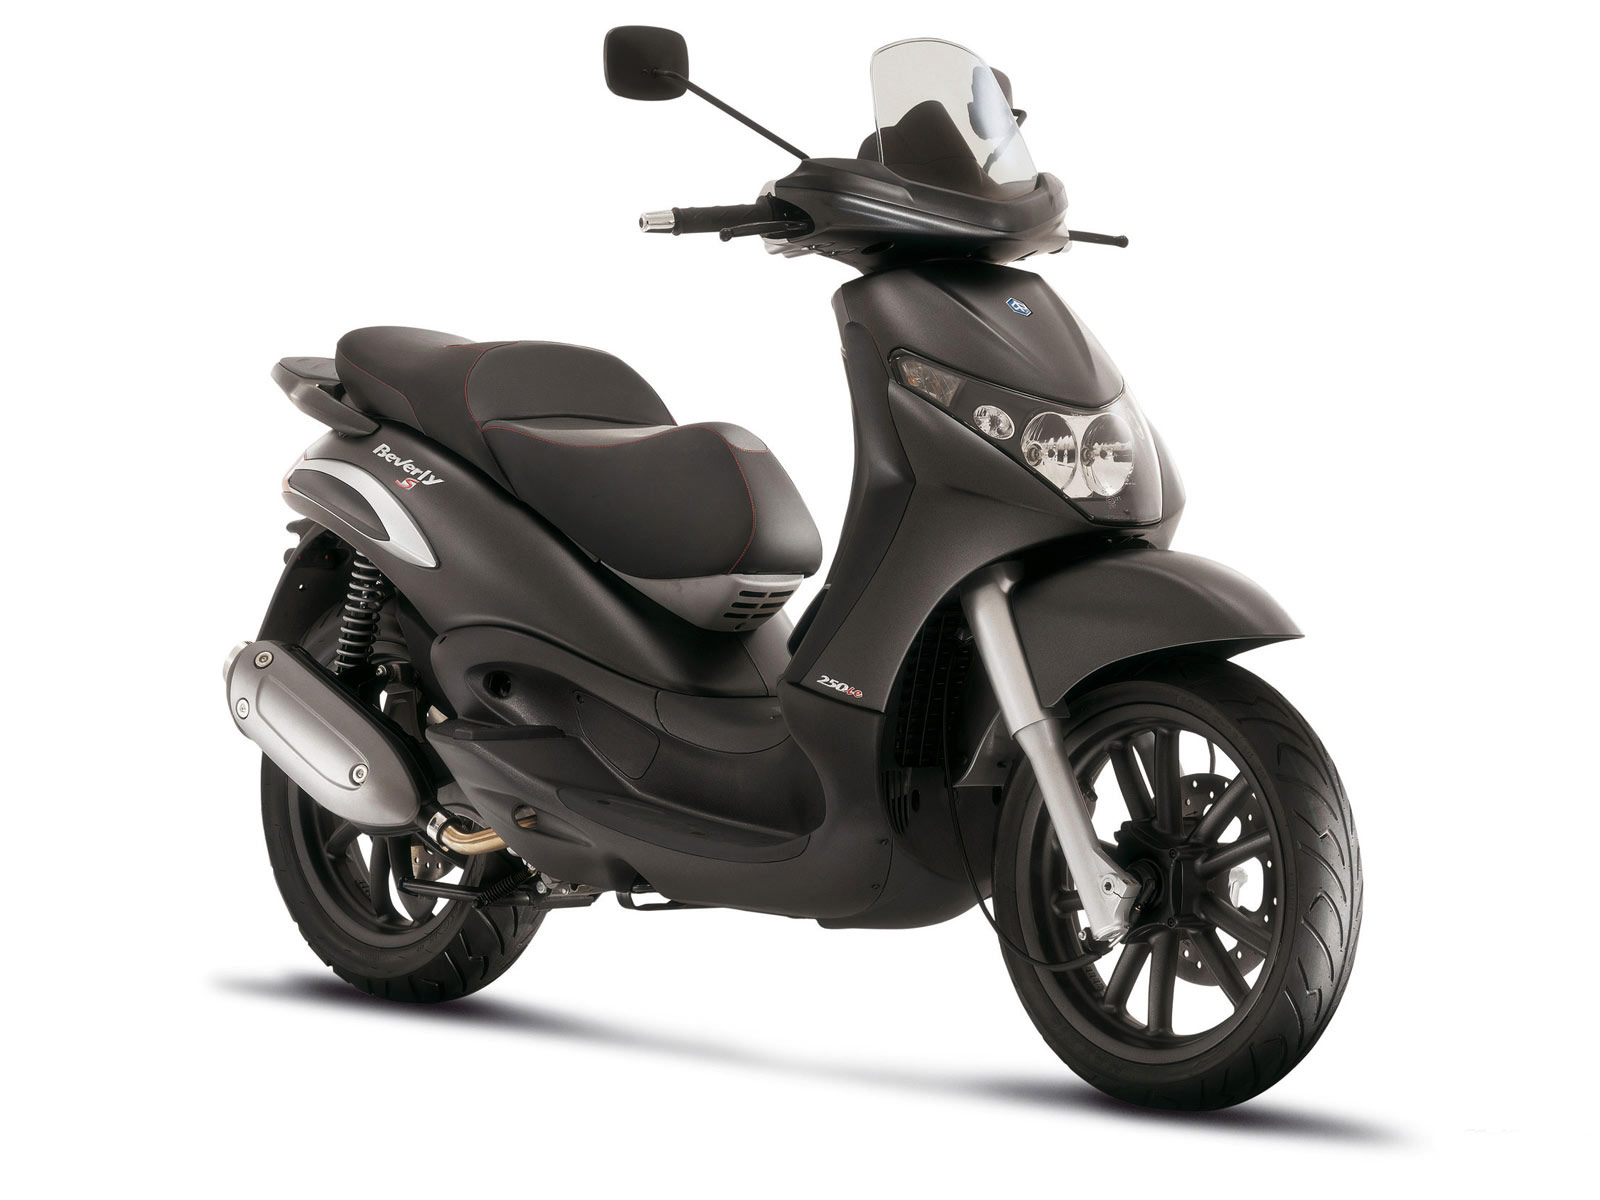 2007 piaggio beverly 250ie scooter pictures. Black Bedroom Furniture Sets. Home Design Ideas